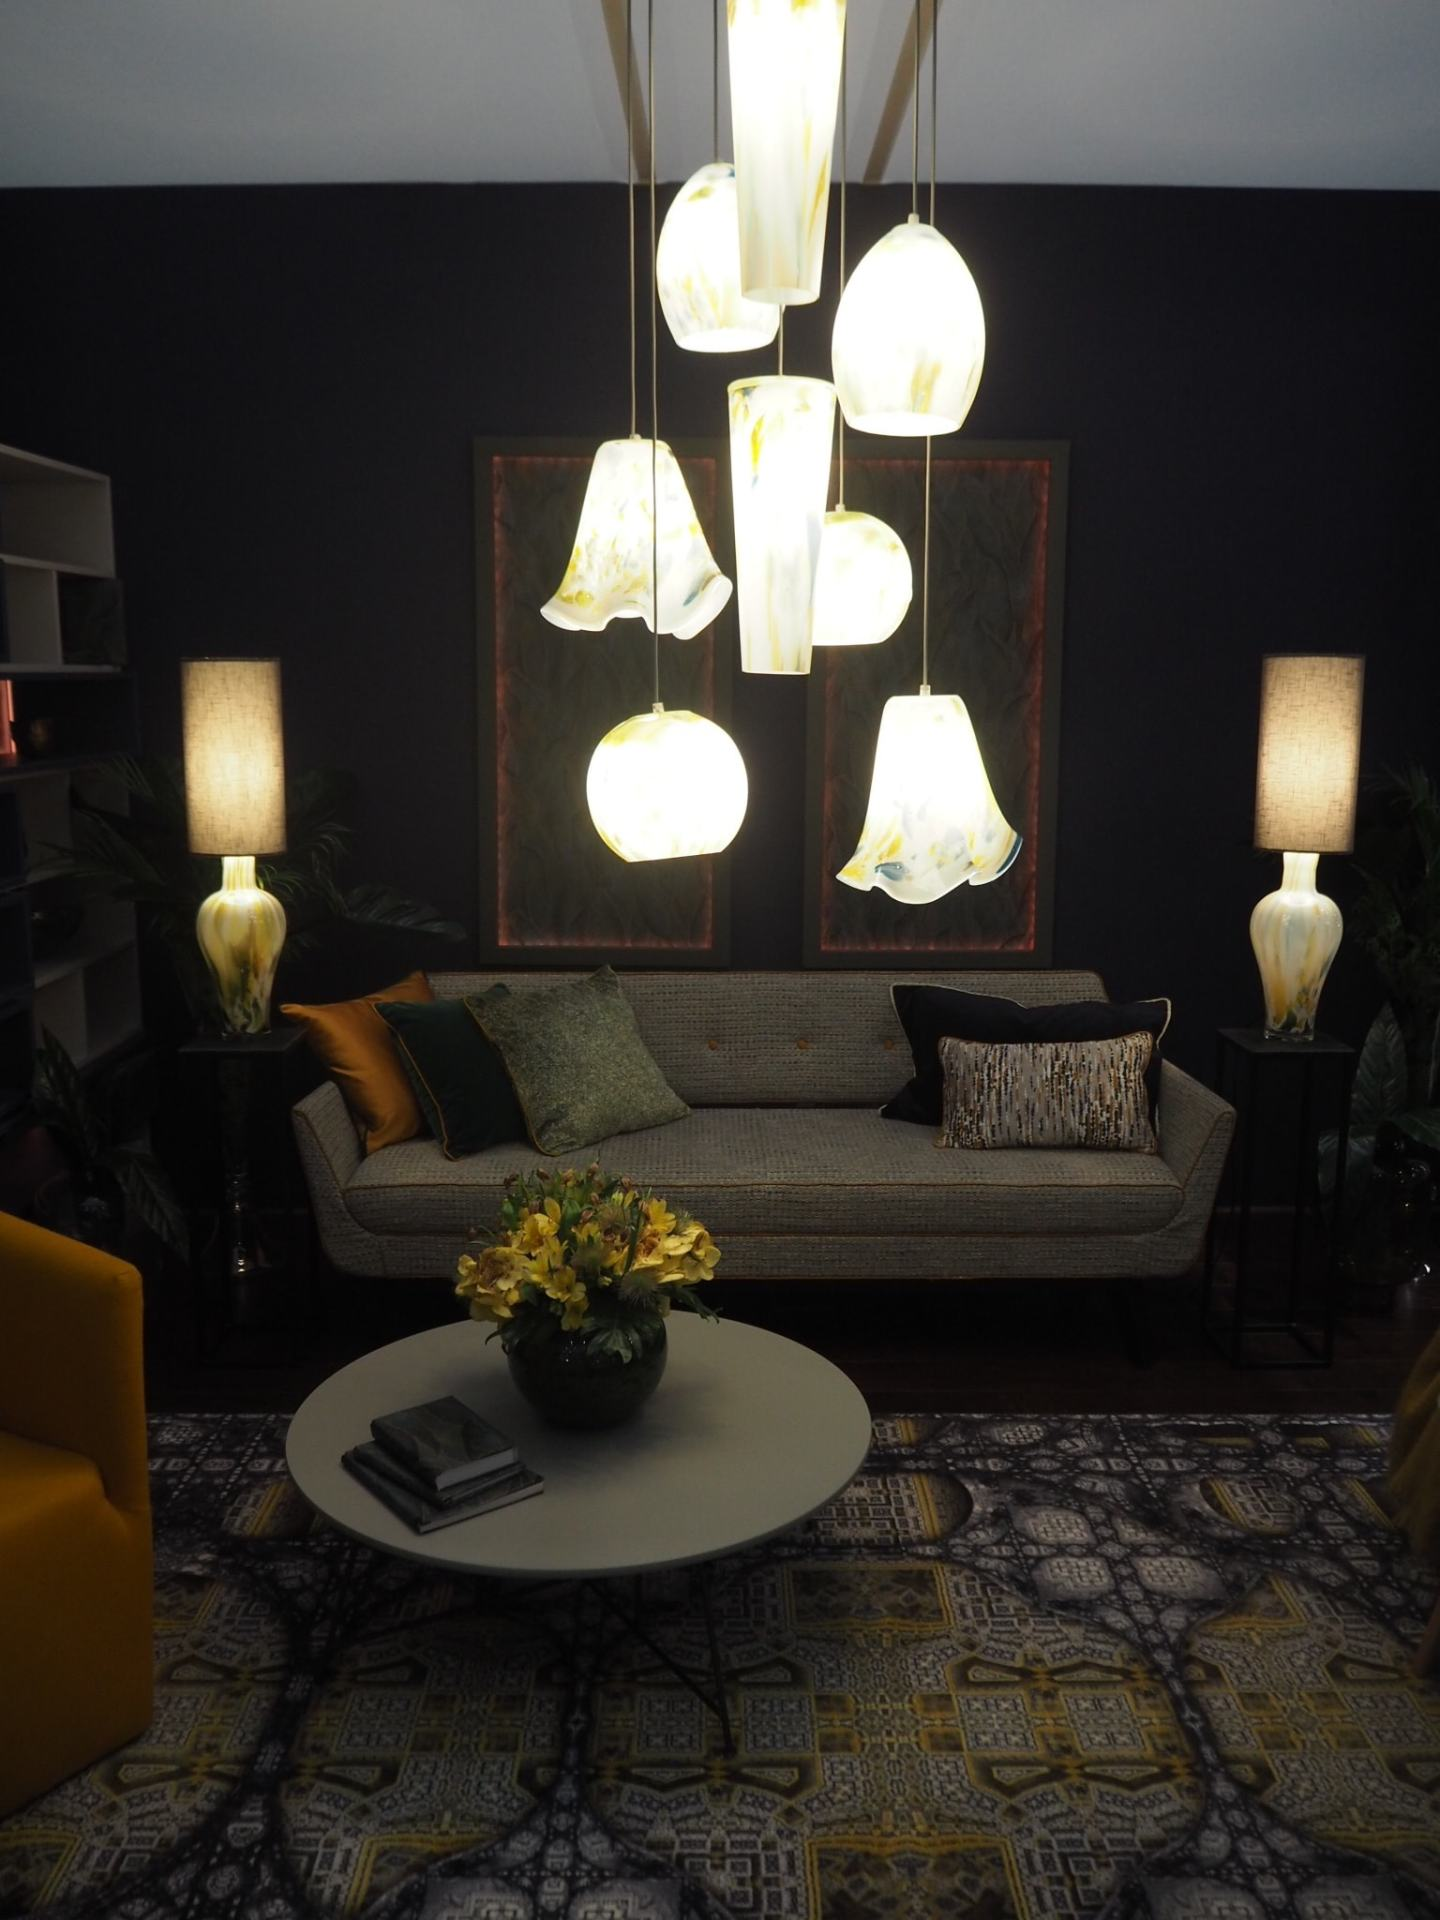 It's all about the fabulous lighting!